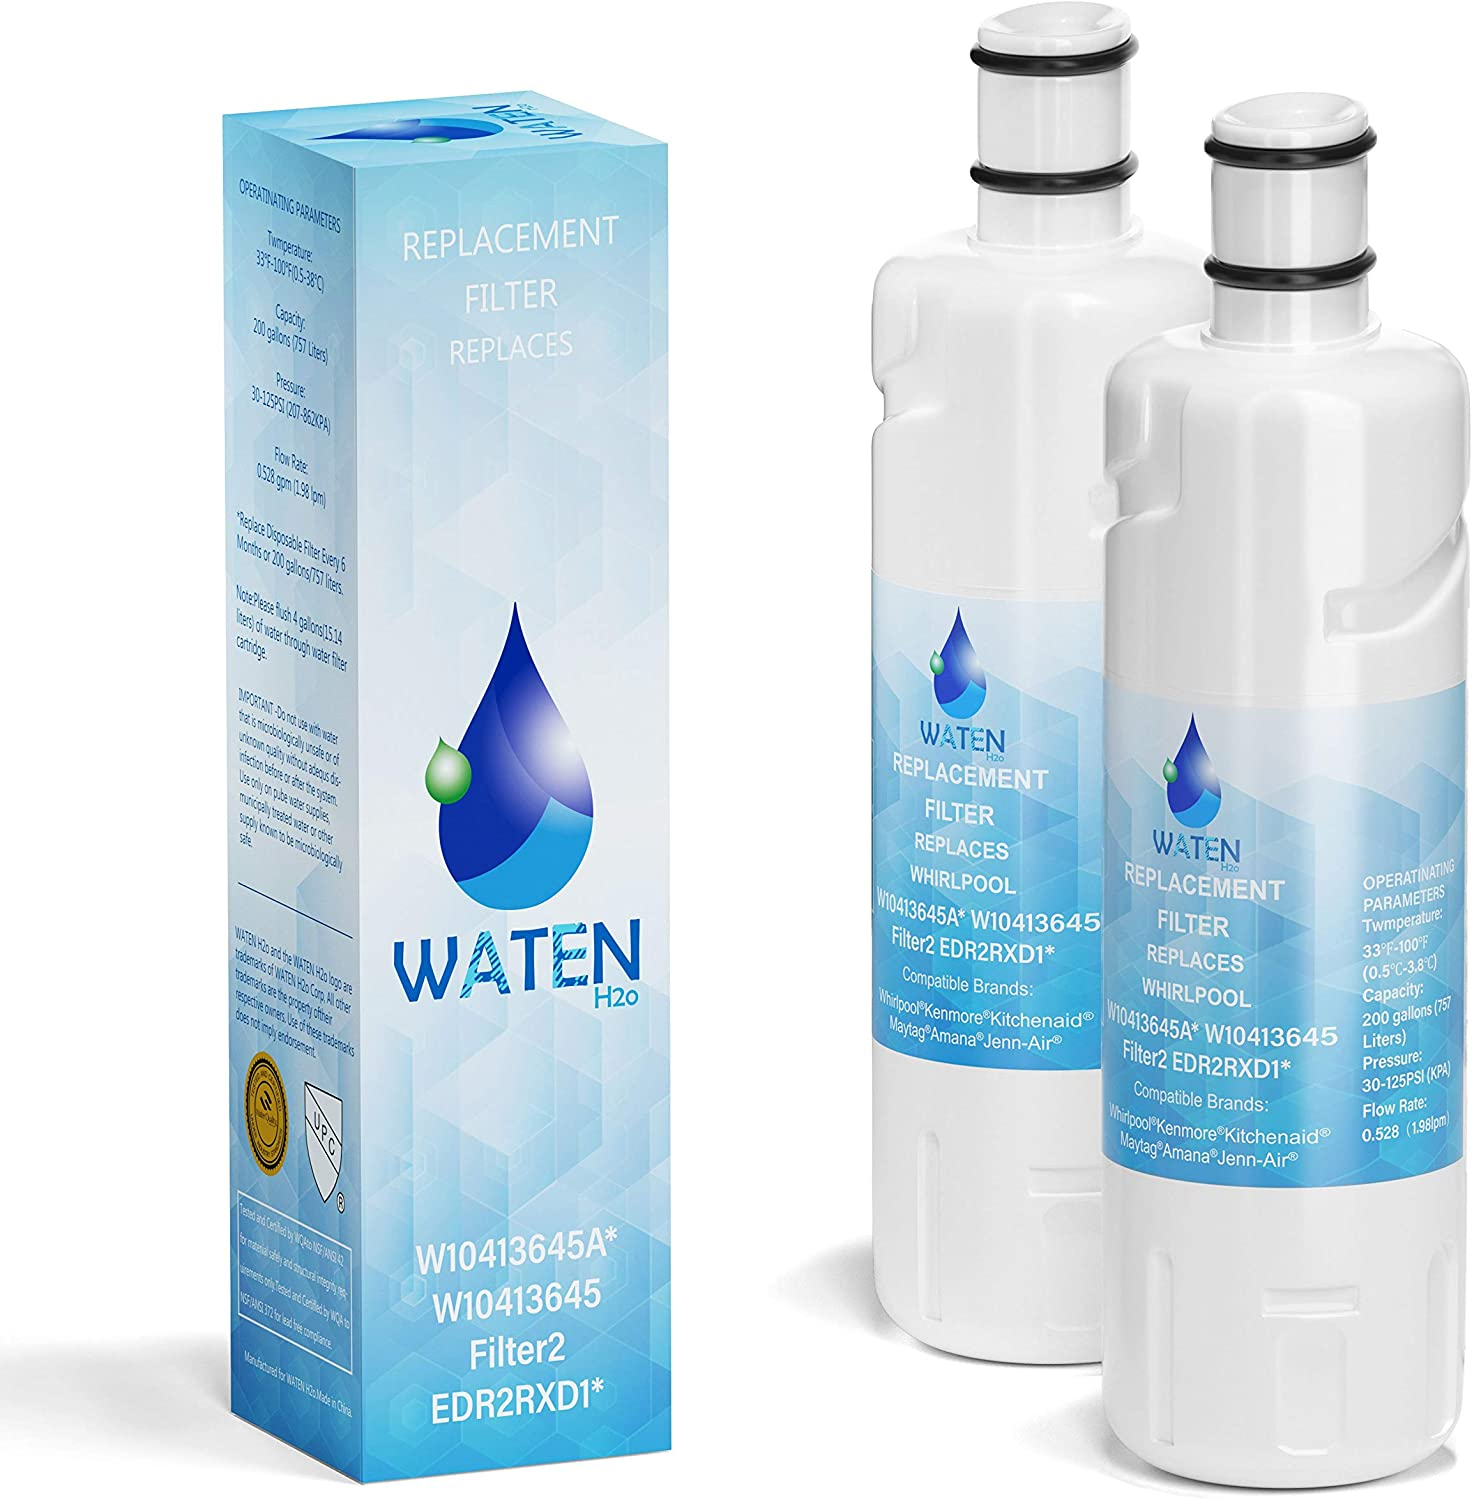 1-Pack B-F Replacement W-10413-645A Water Filter 2 Compatible with W-10413645-a Refrigerator Water Filter 2